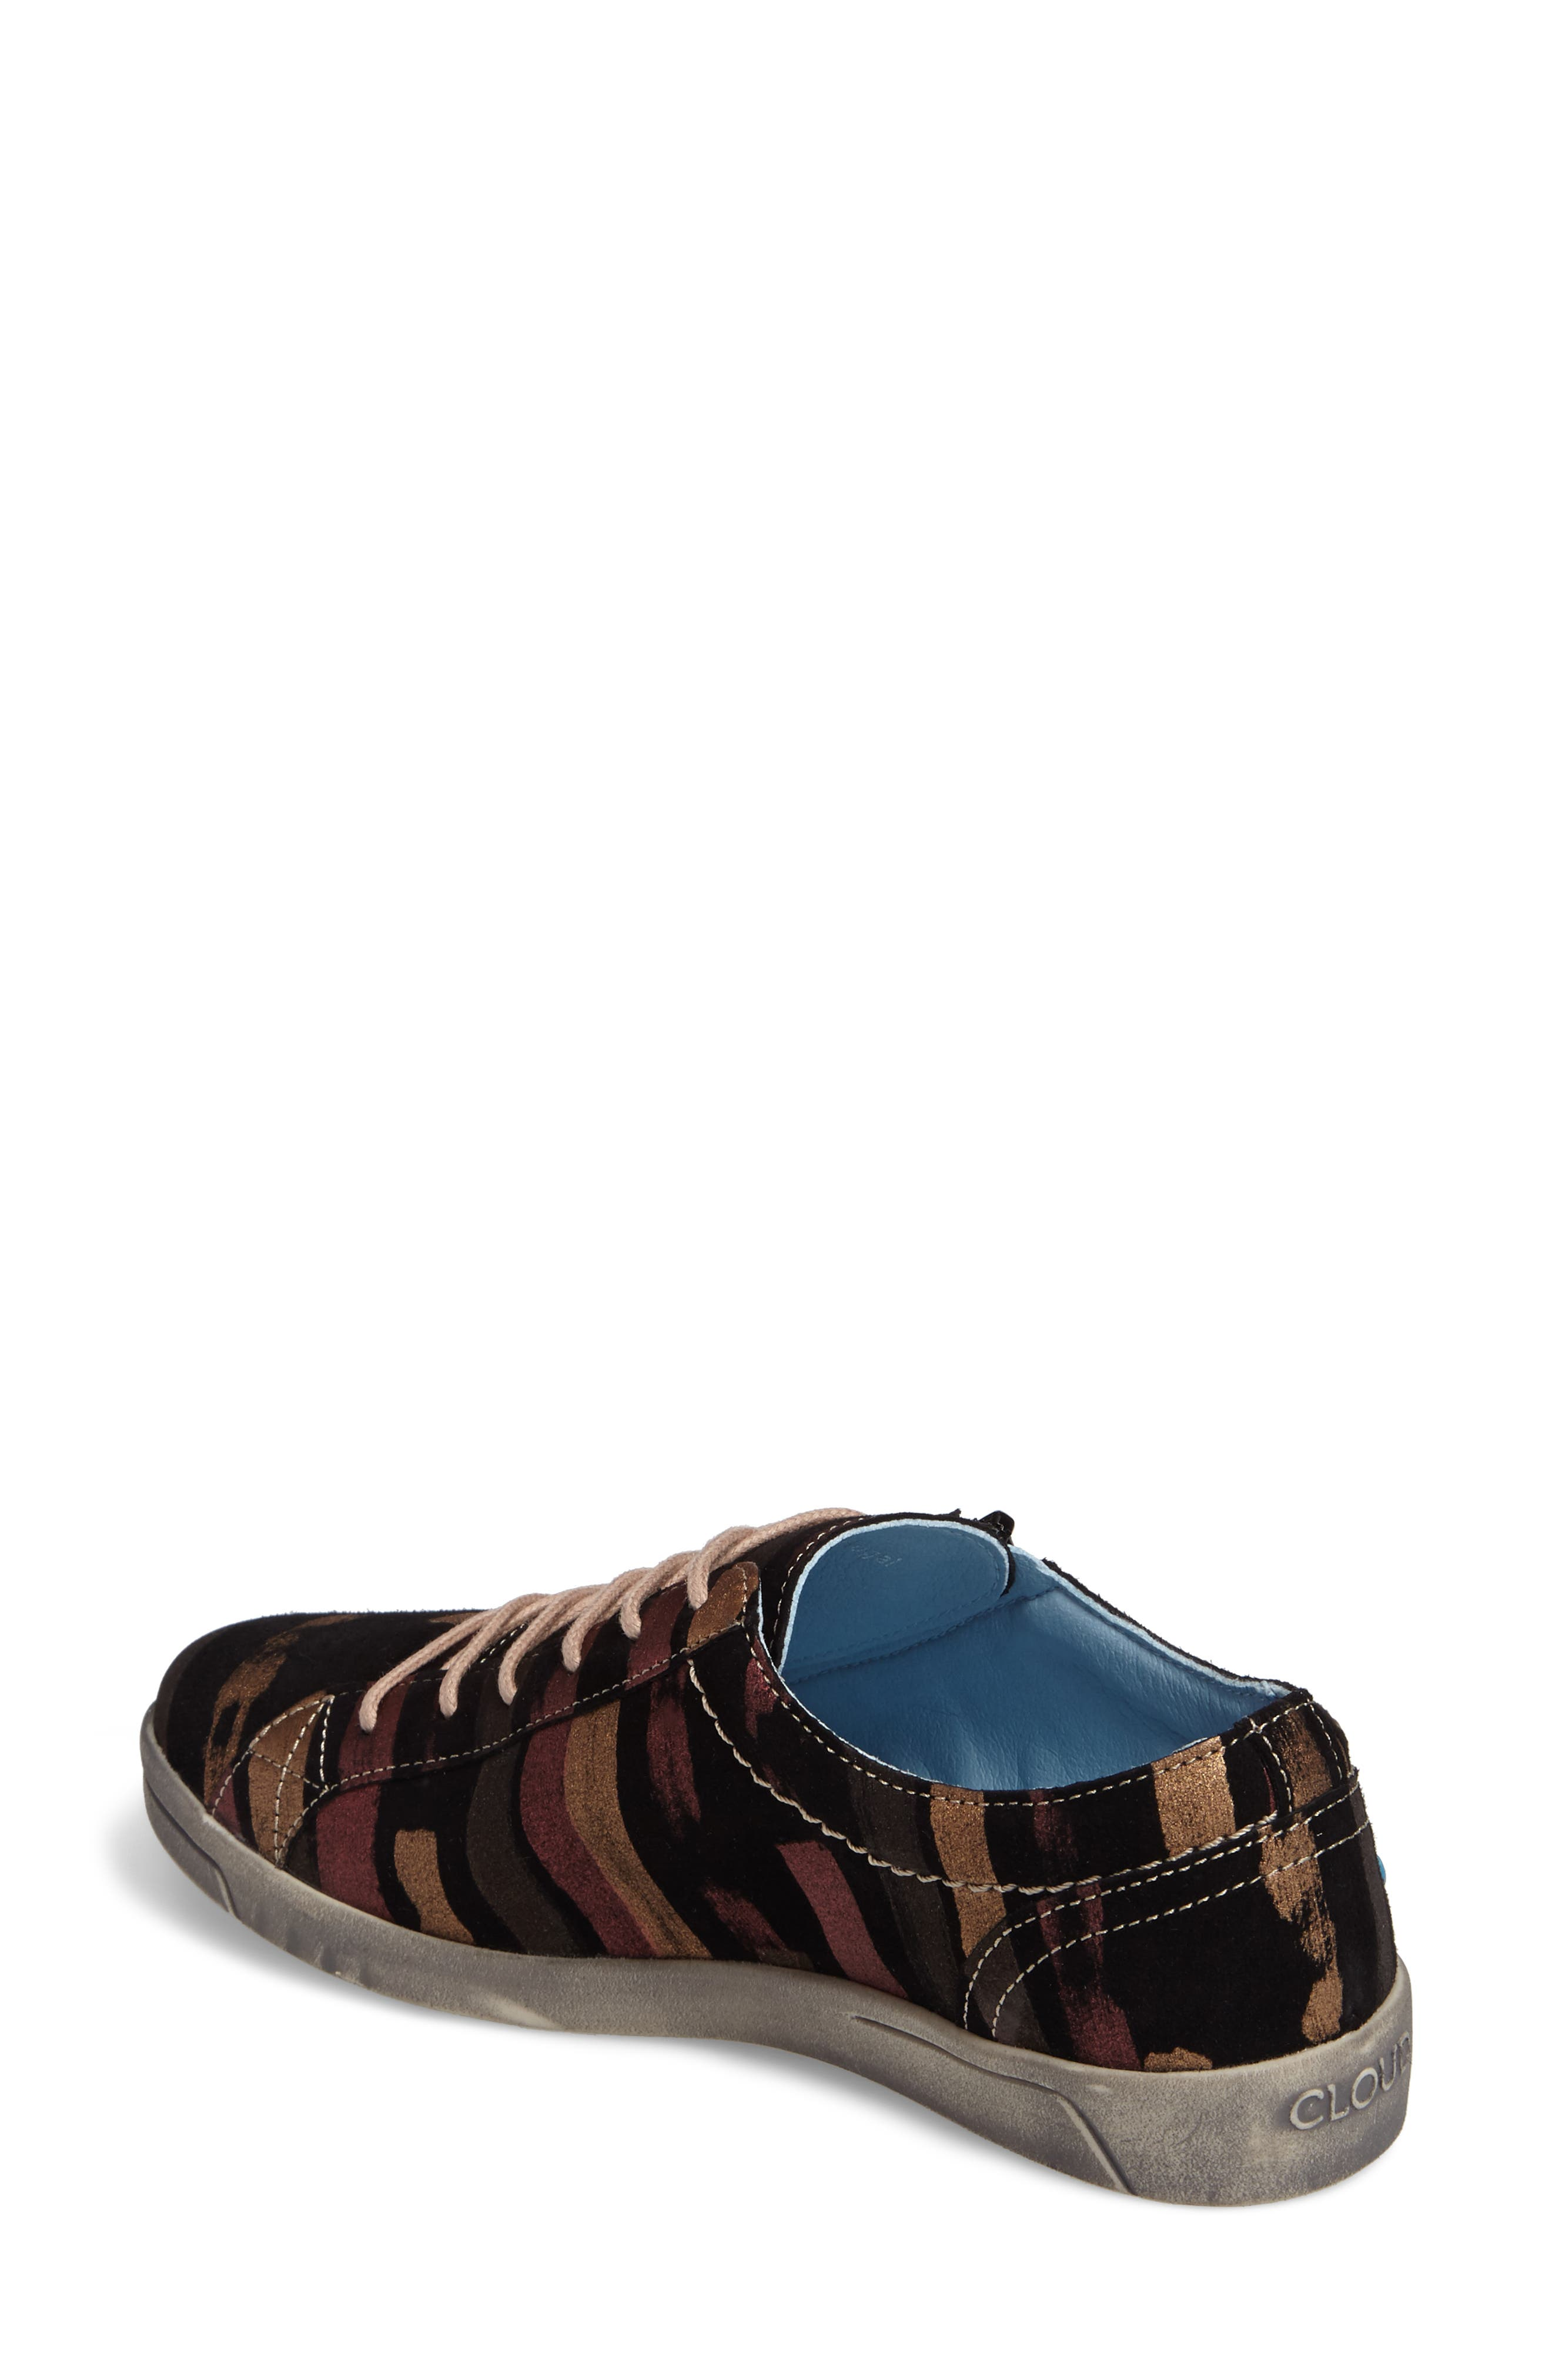 Aika Low Top Sneaker,                             Alternate thumbnail 2, color,                             BLACK LEATHER